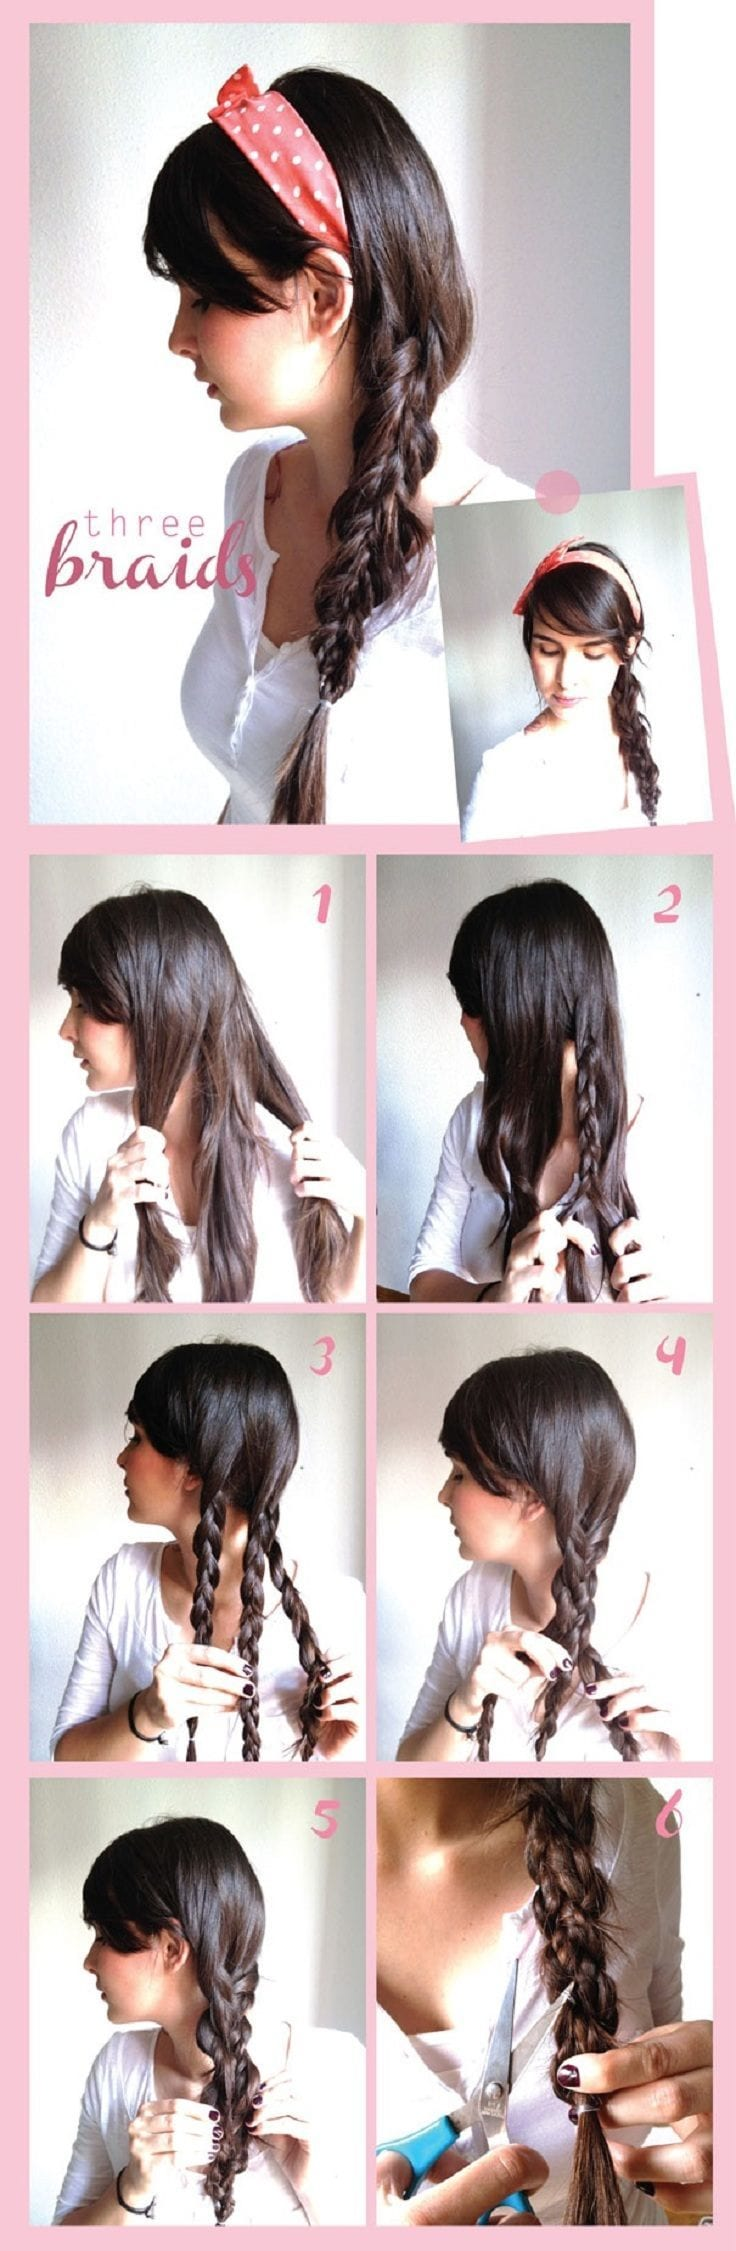 Strange 20 Cute And Easy Braided Hairstyle Tutorials Latest Styles Hairstyles For Women Draintrainus